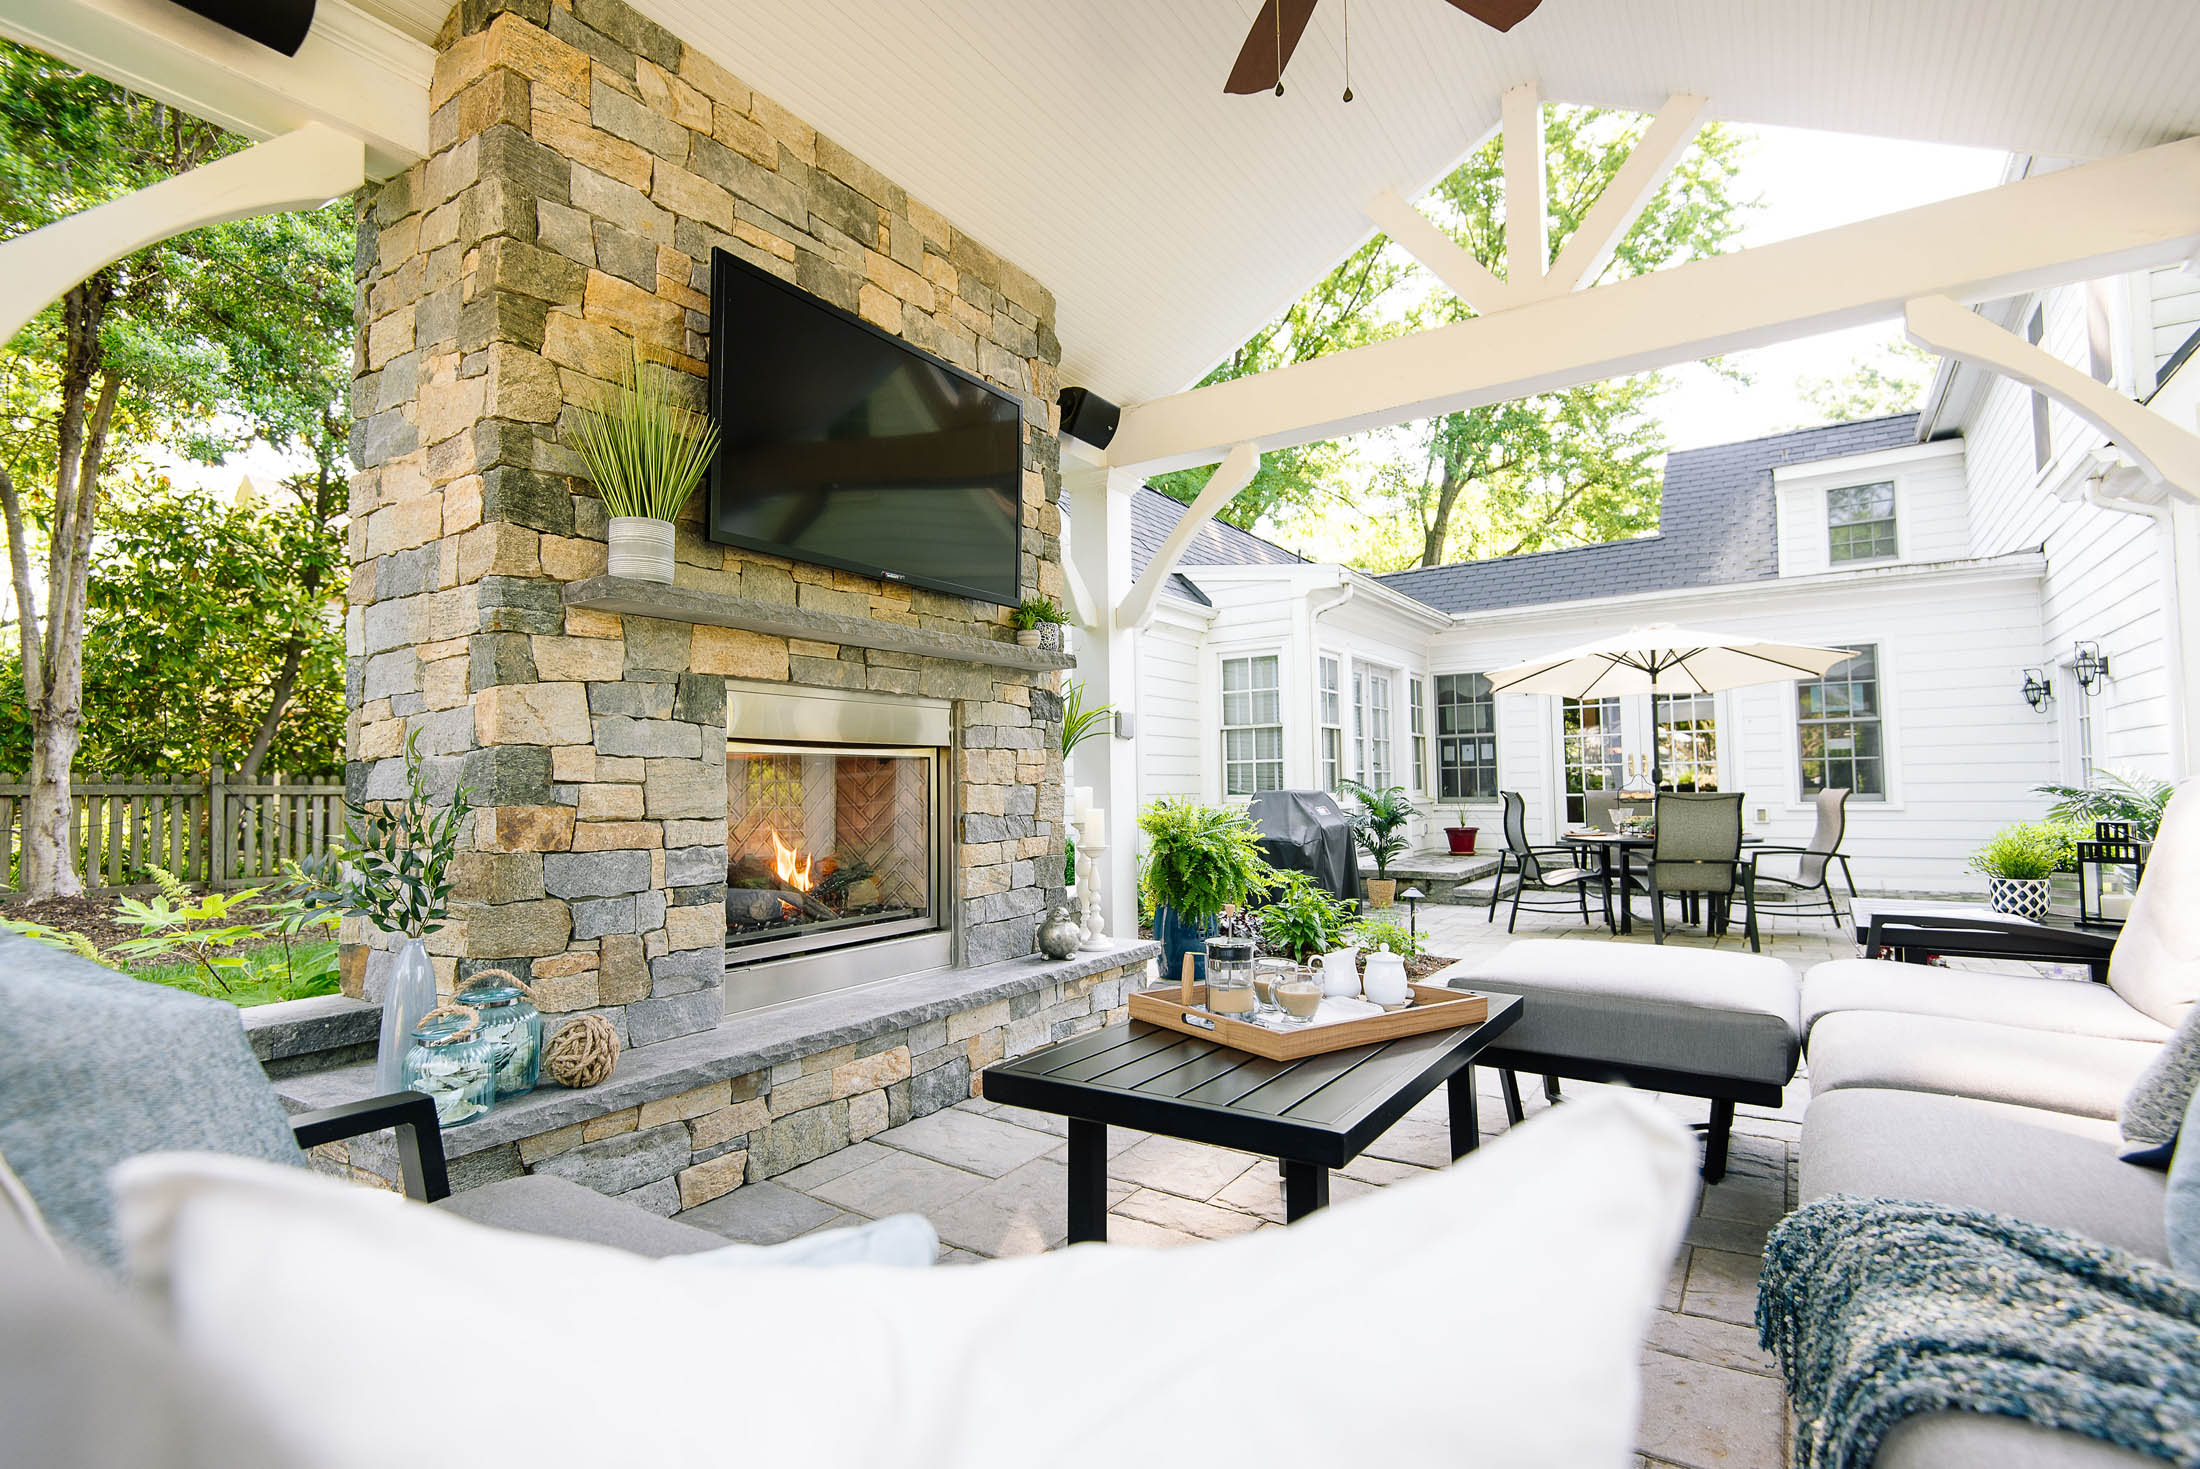 Outdoor living space with gas fireplace, pavilion, and outdoor television